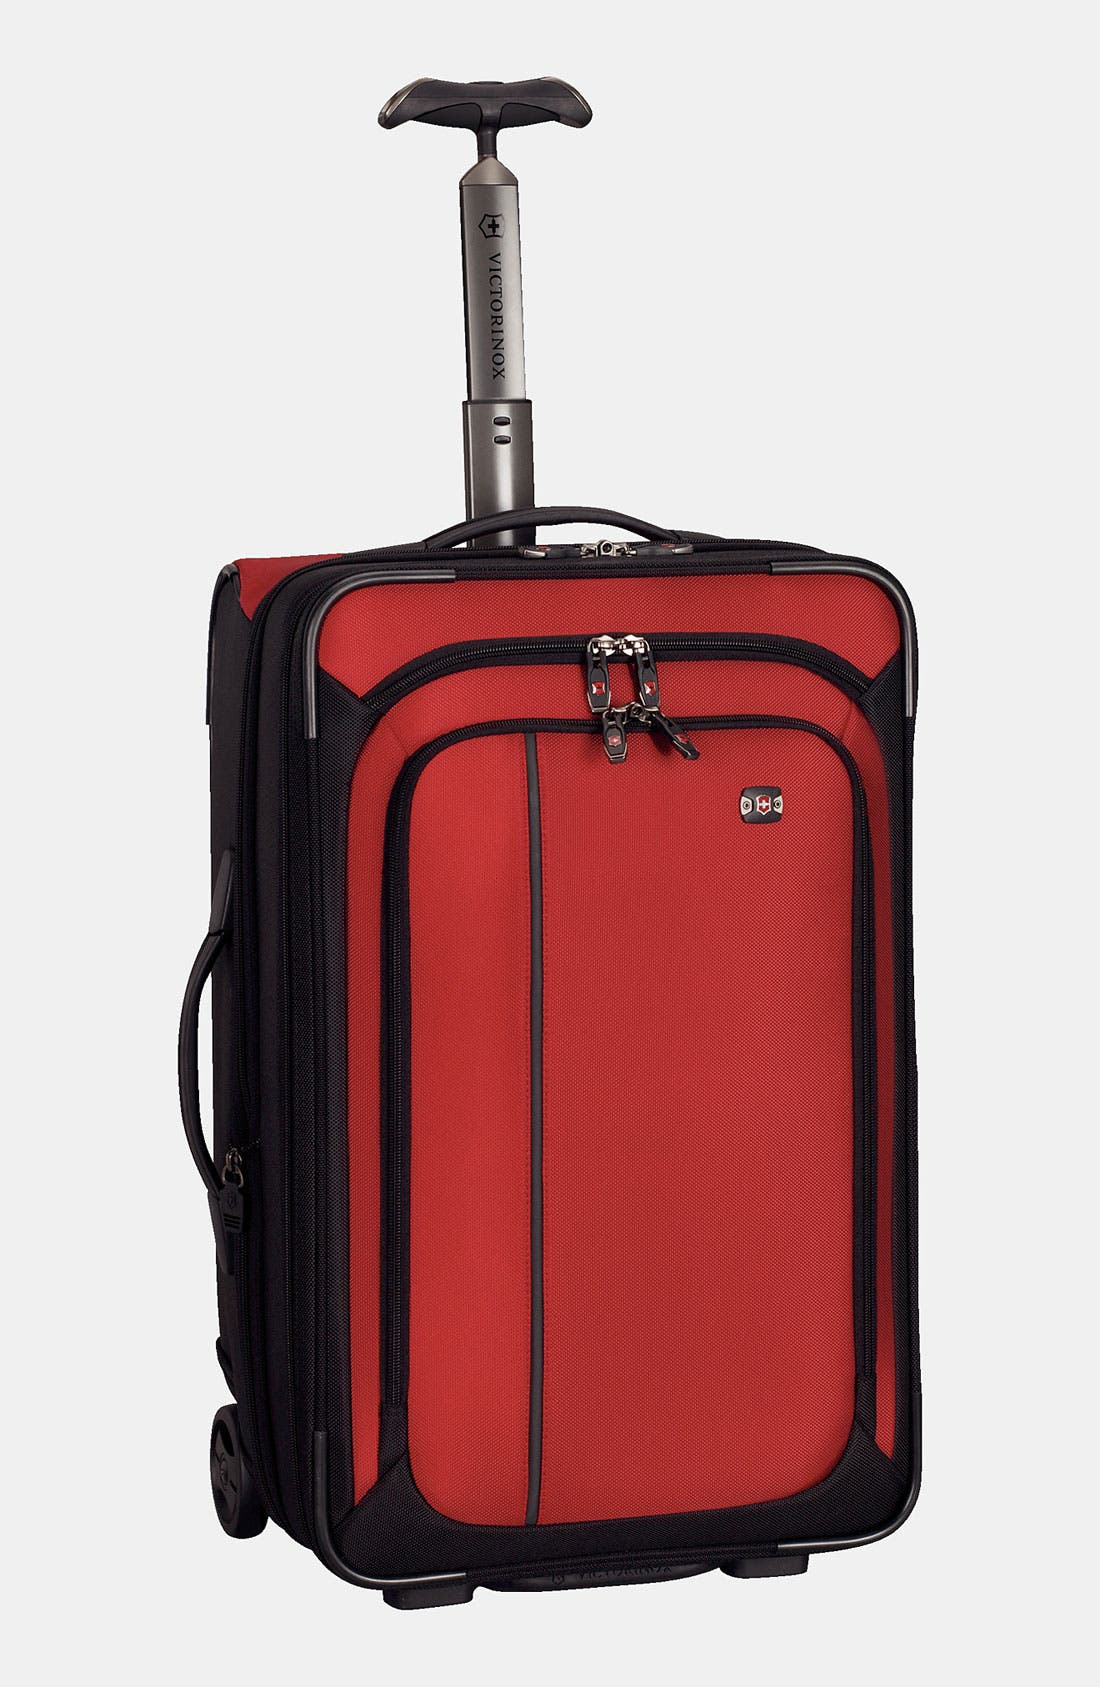 'Werks - Traveler' Rolling Carry-On,                             Main thumbnail 1, color,                             Red/ Black